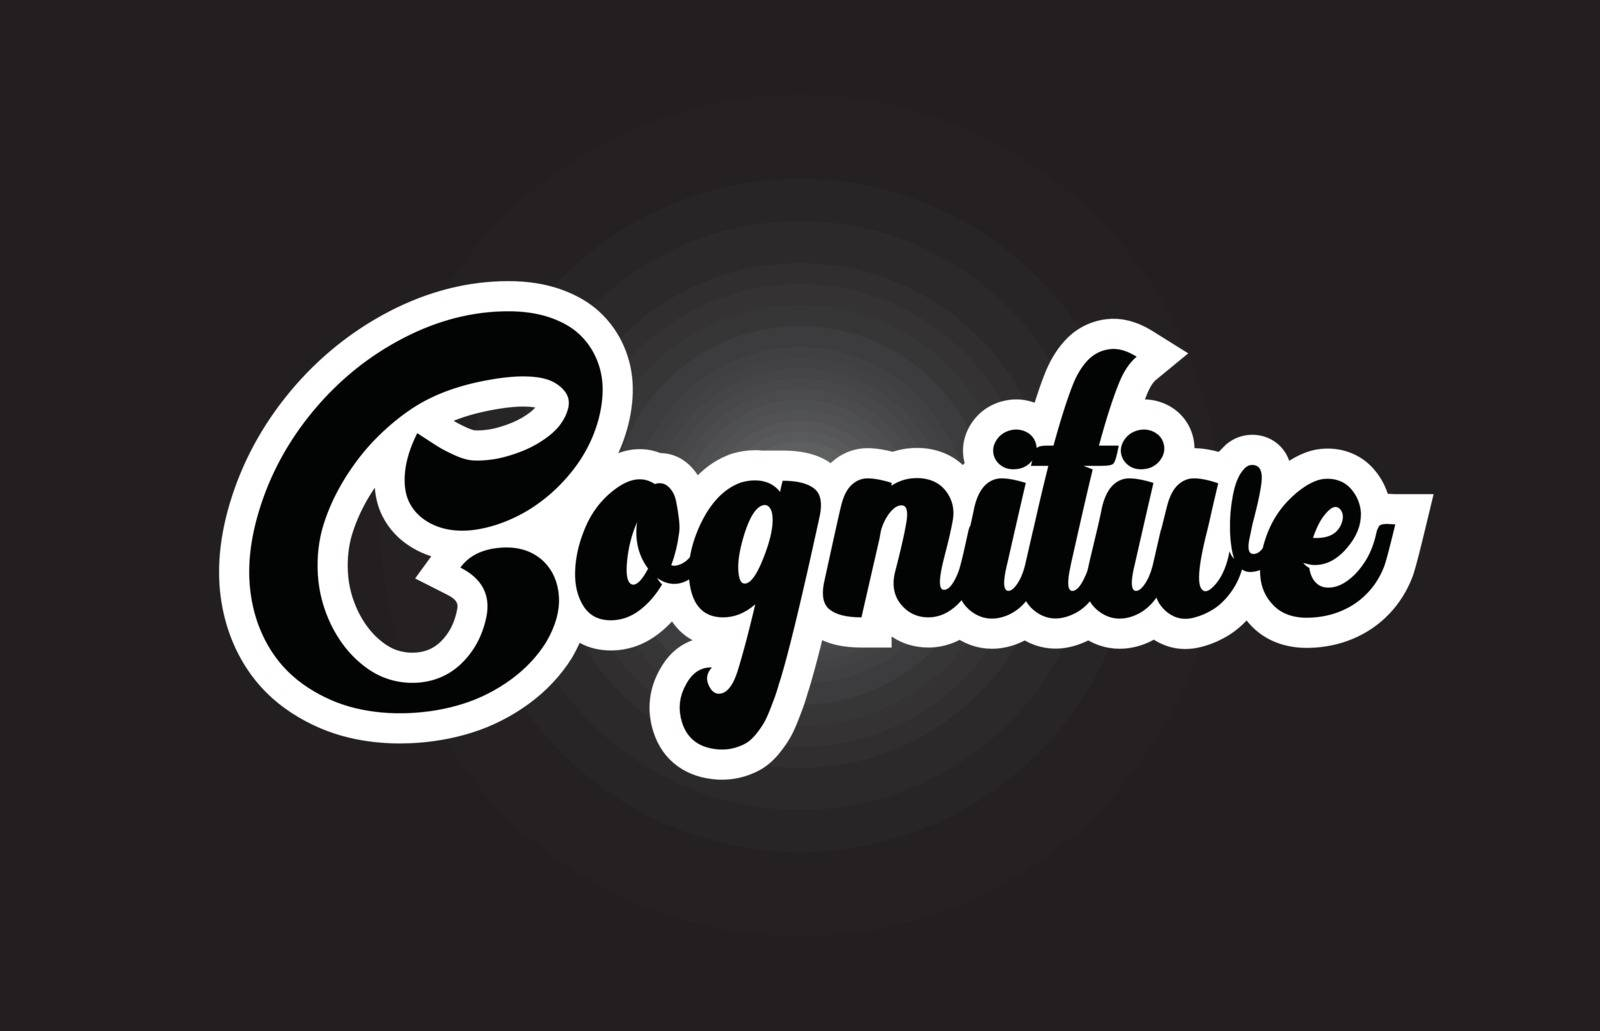 black and white Cognitive hand written word text for typography  by dragomirescu